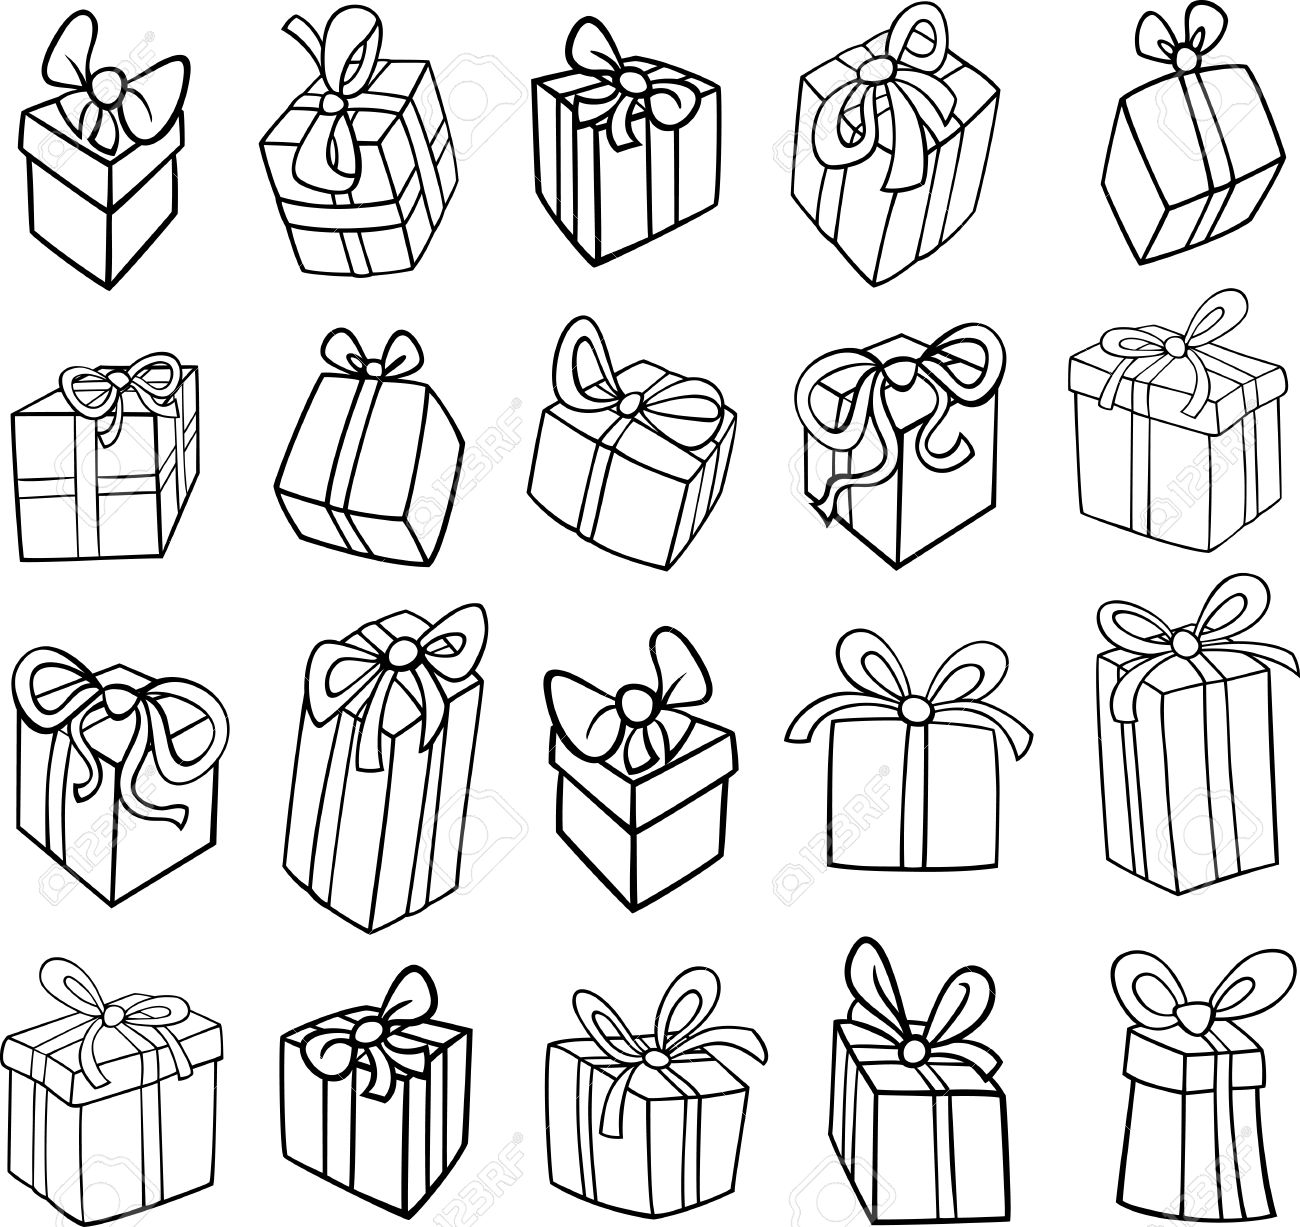 3 548 christmas coloring page stock illustrations cliparts and